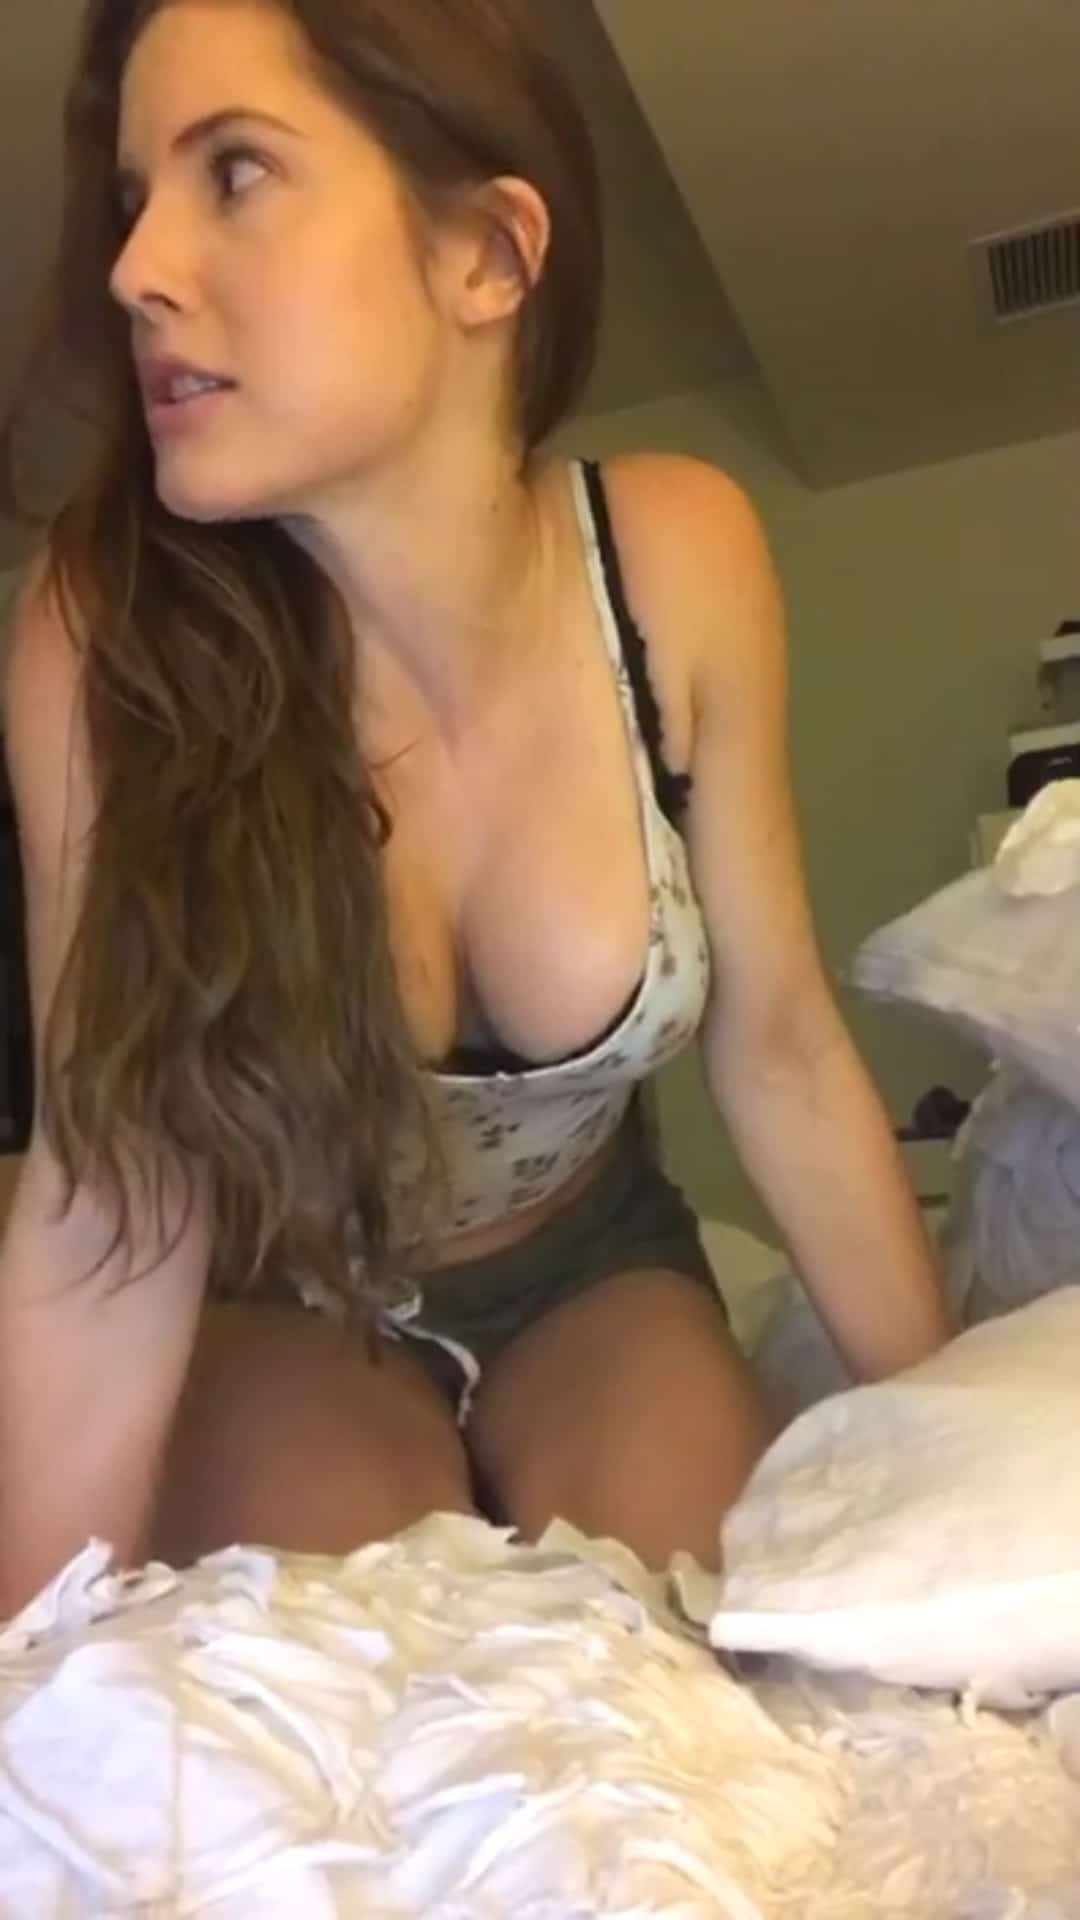 Amanda Naked amanda cerny is not shy - check out her [new] nude photos